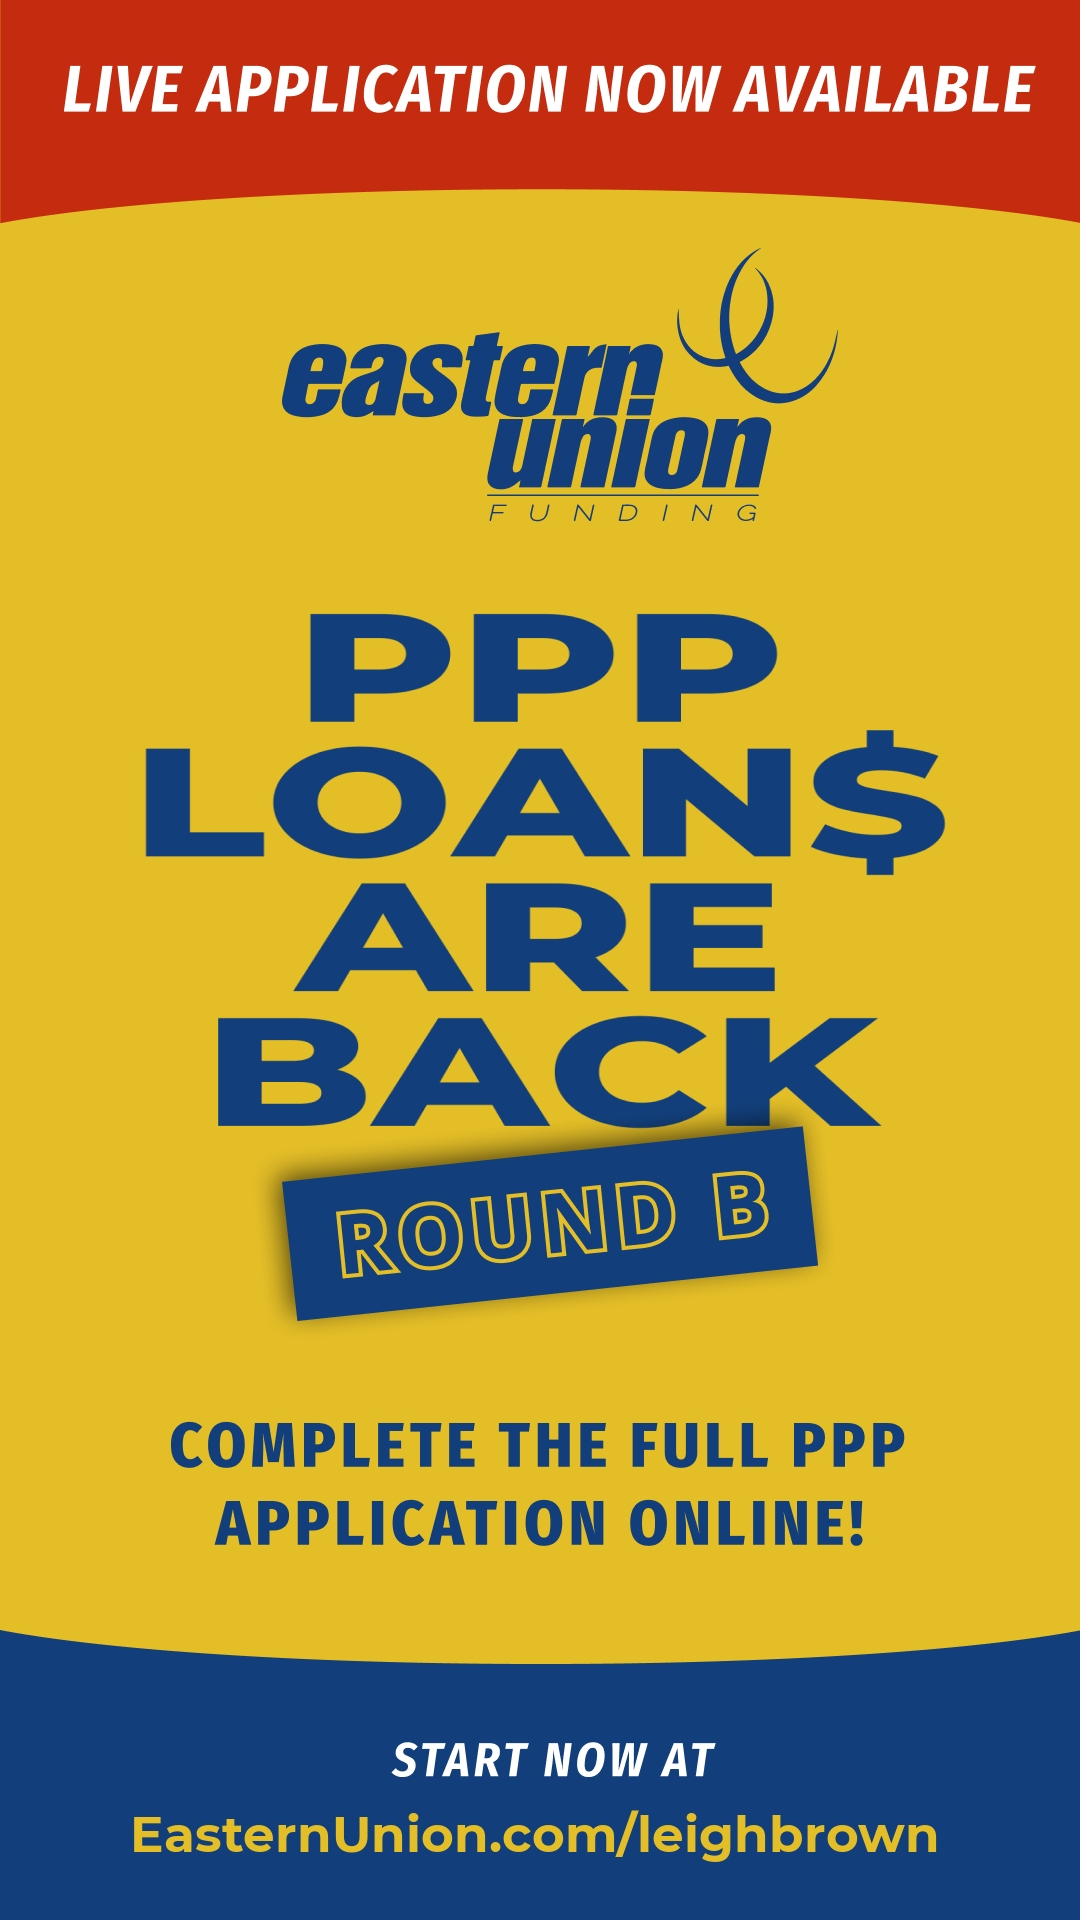 PPP Loan Round 2 with Eastern Union